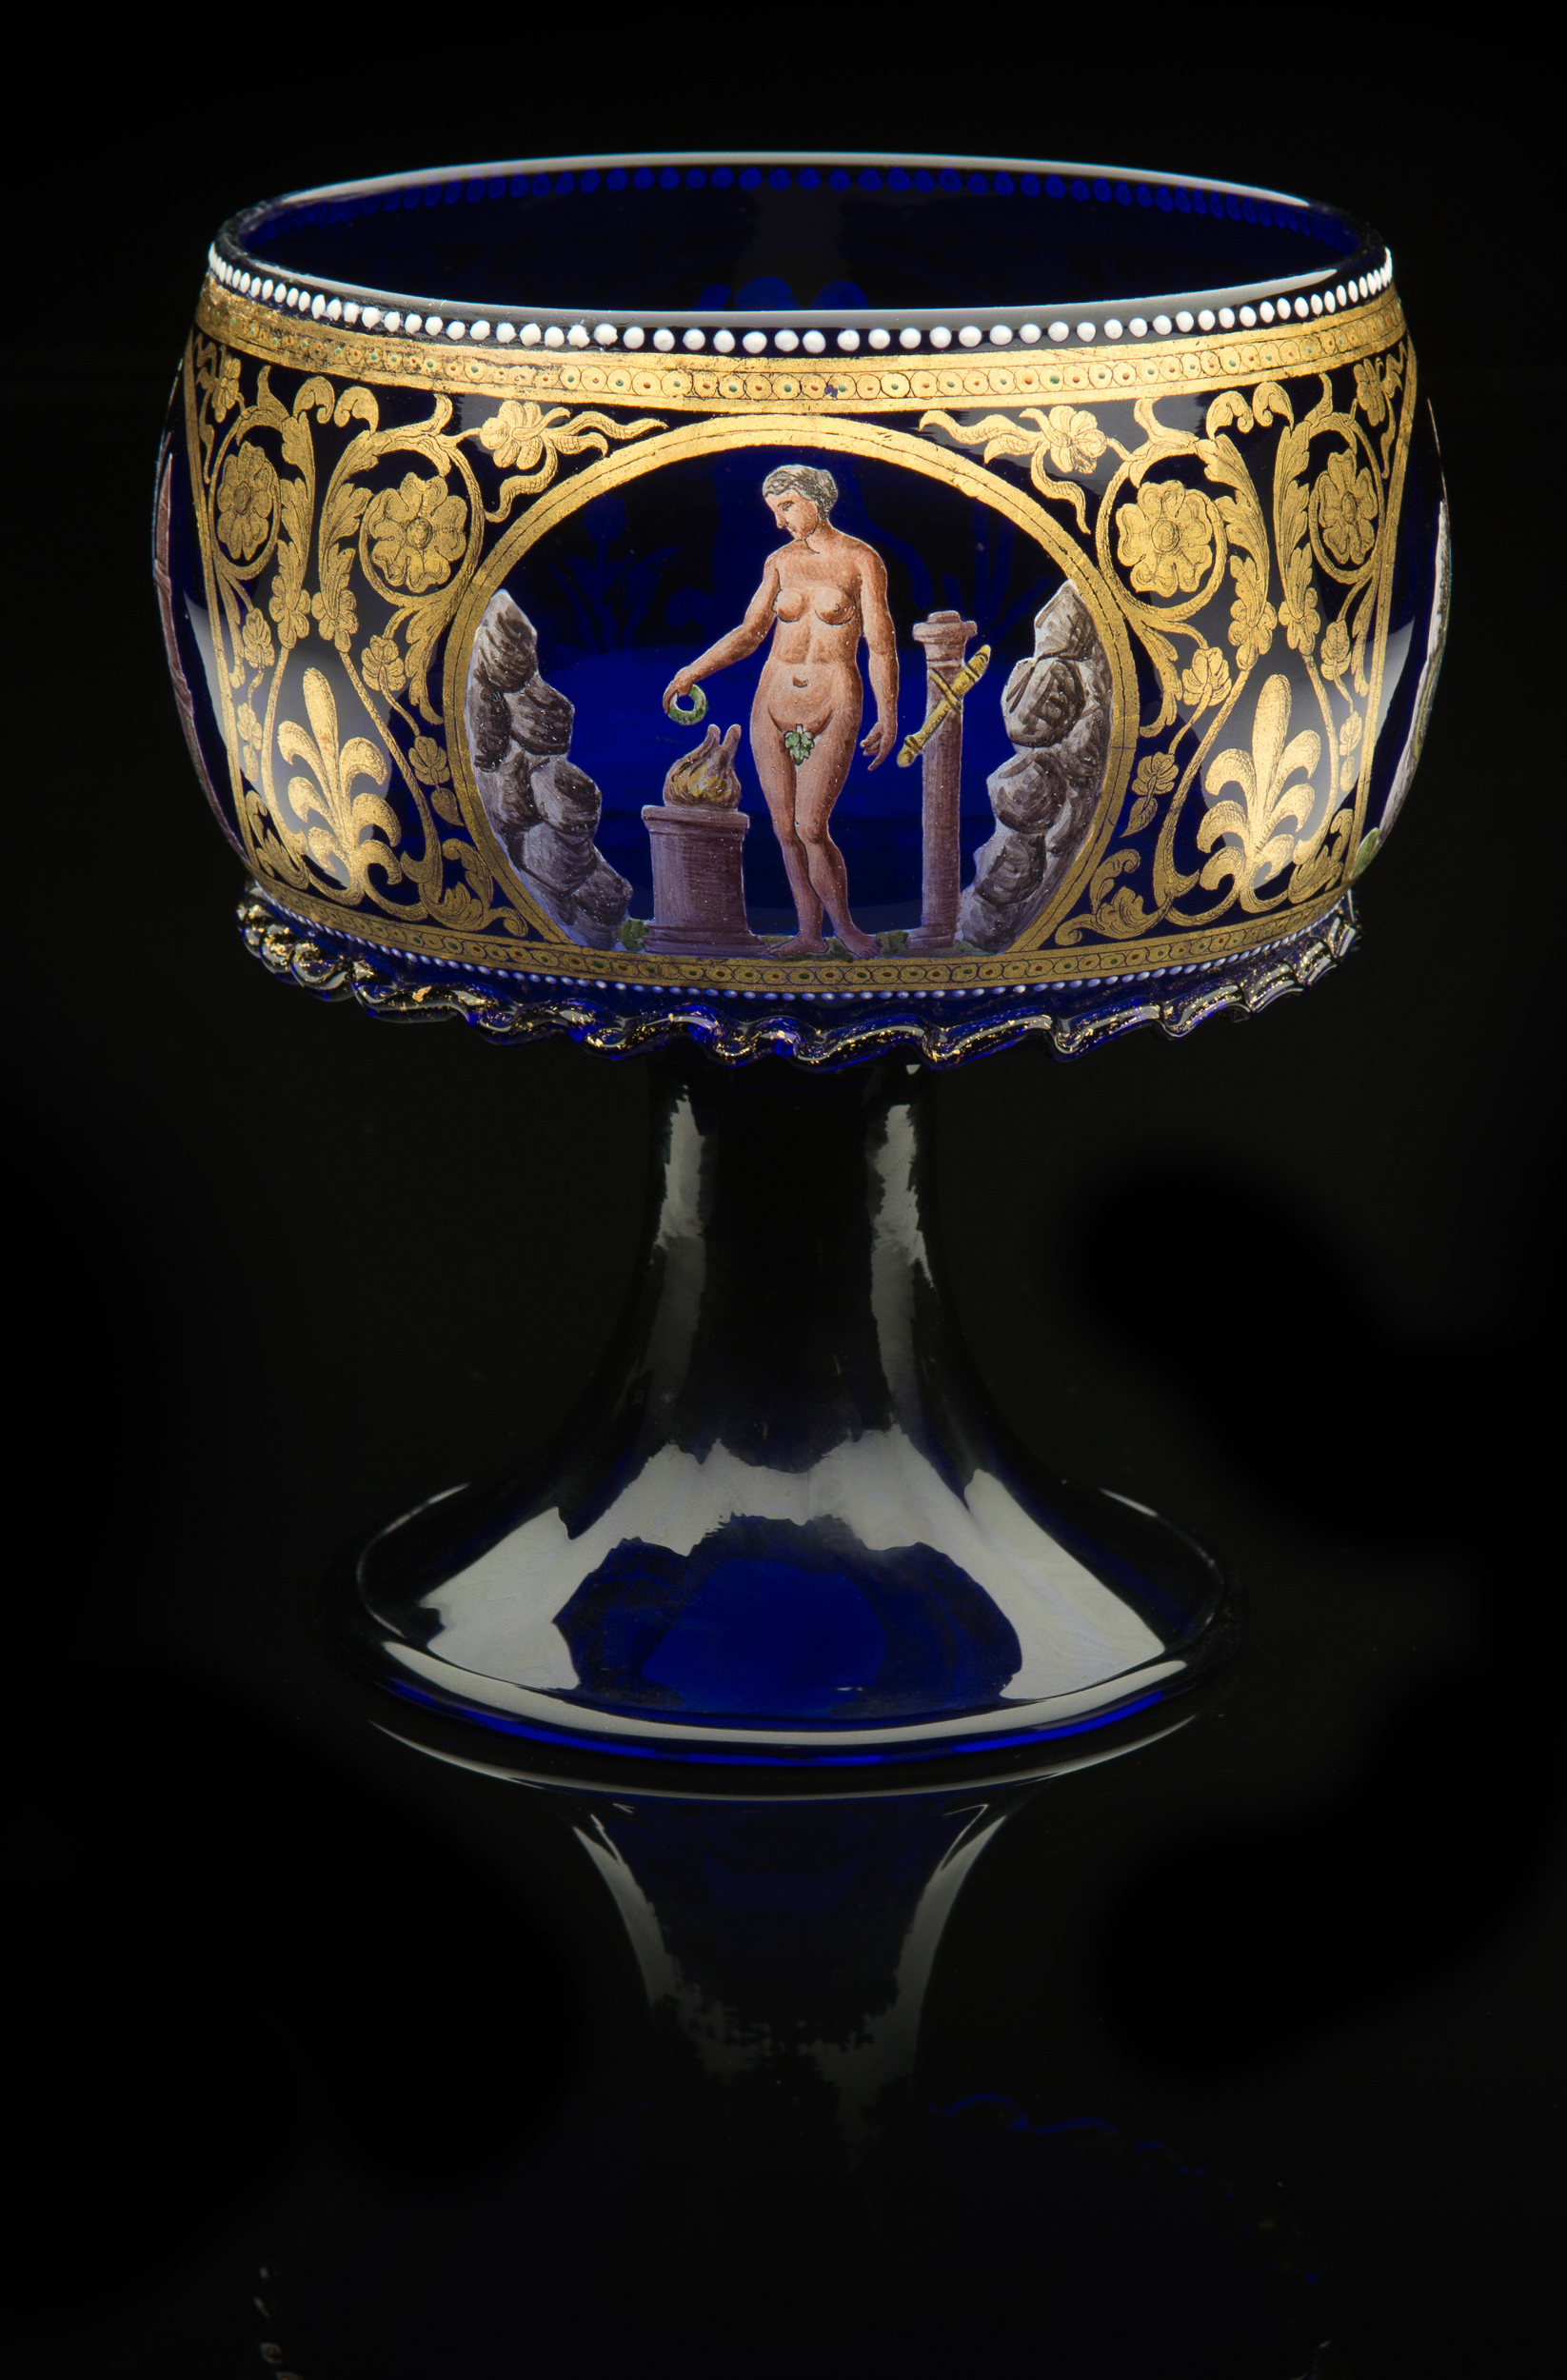 Venice and Murano Company, Hercules Footed Bowl,   (circa 1880, glass, gilding and enamel, 6 1/2 x 5 x 5 inches), VV.573